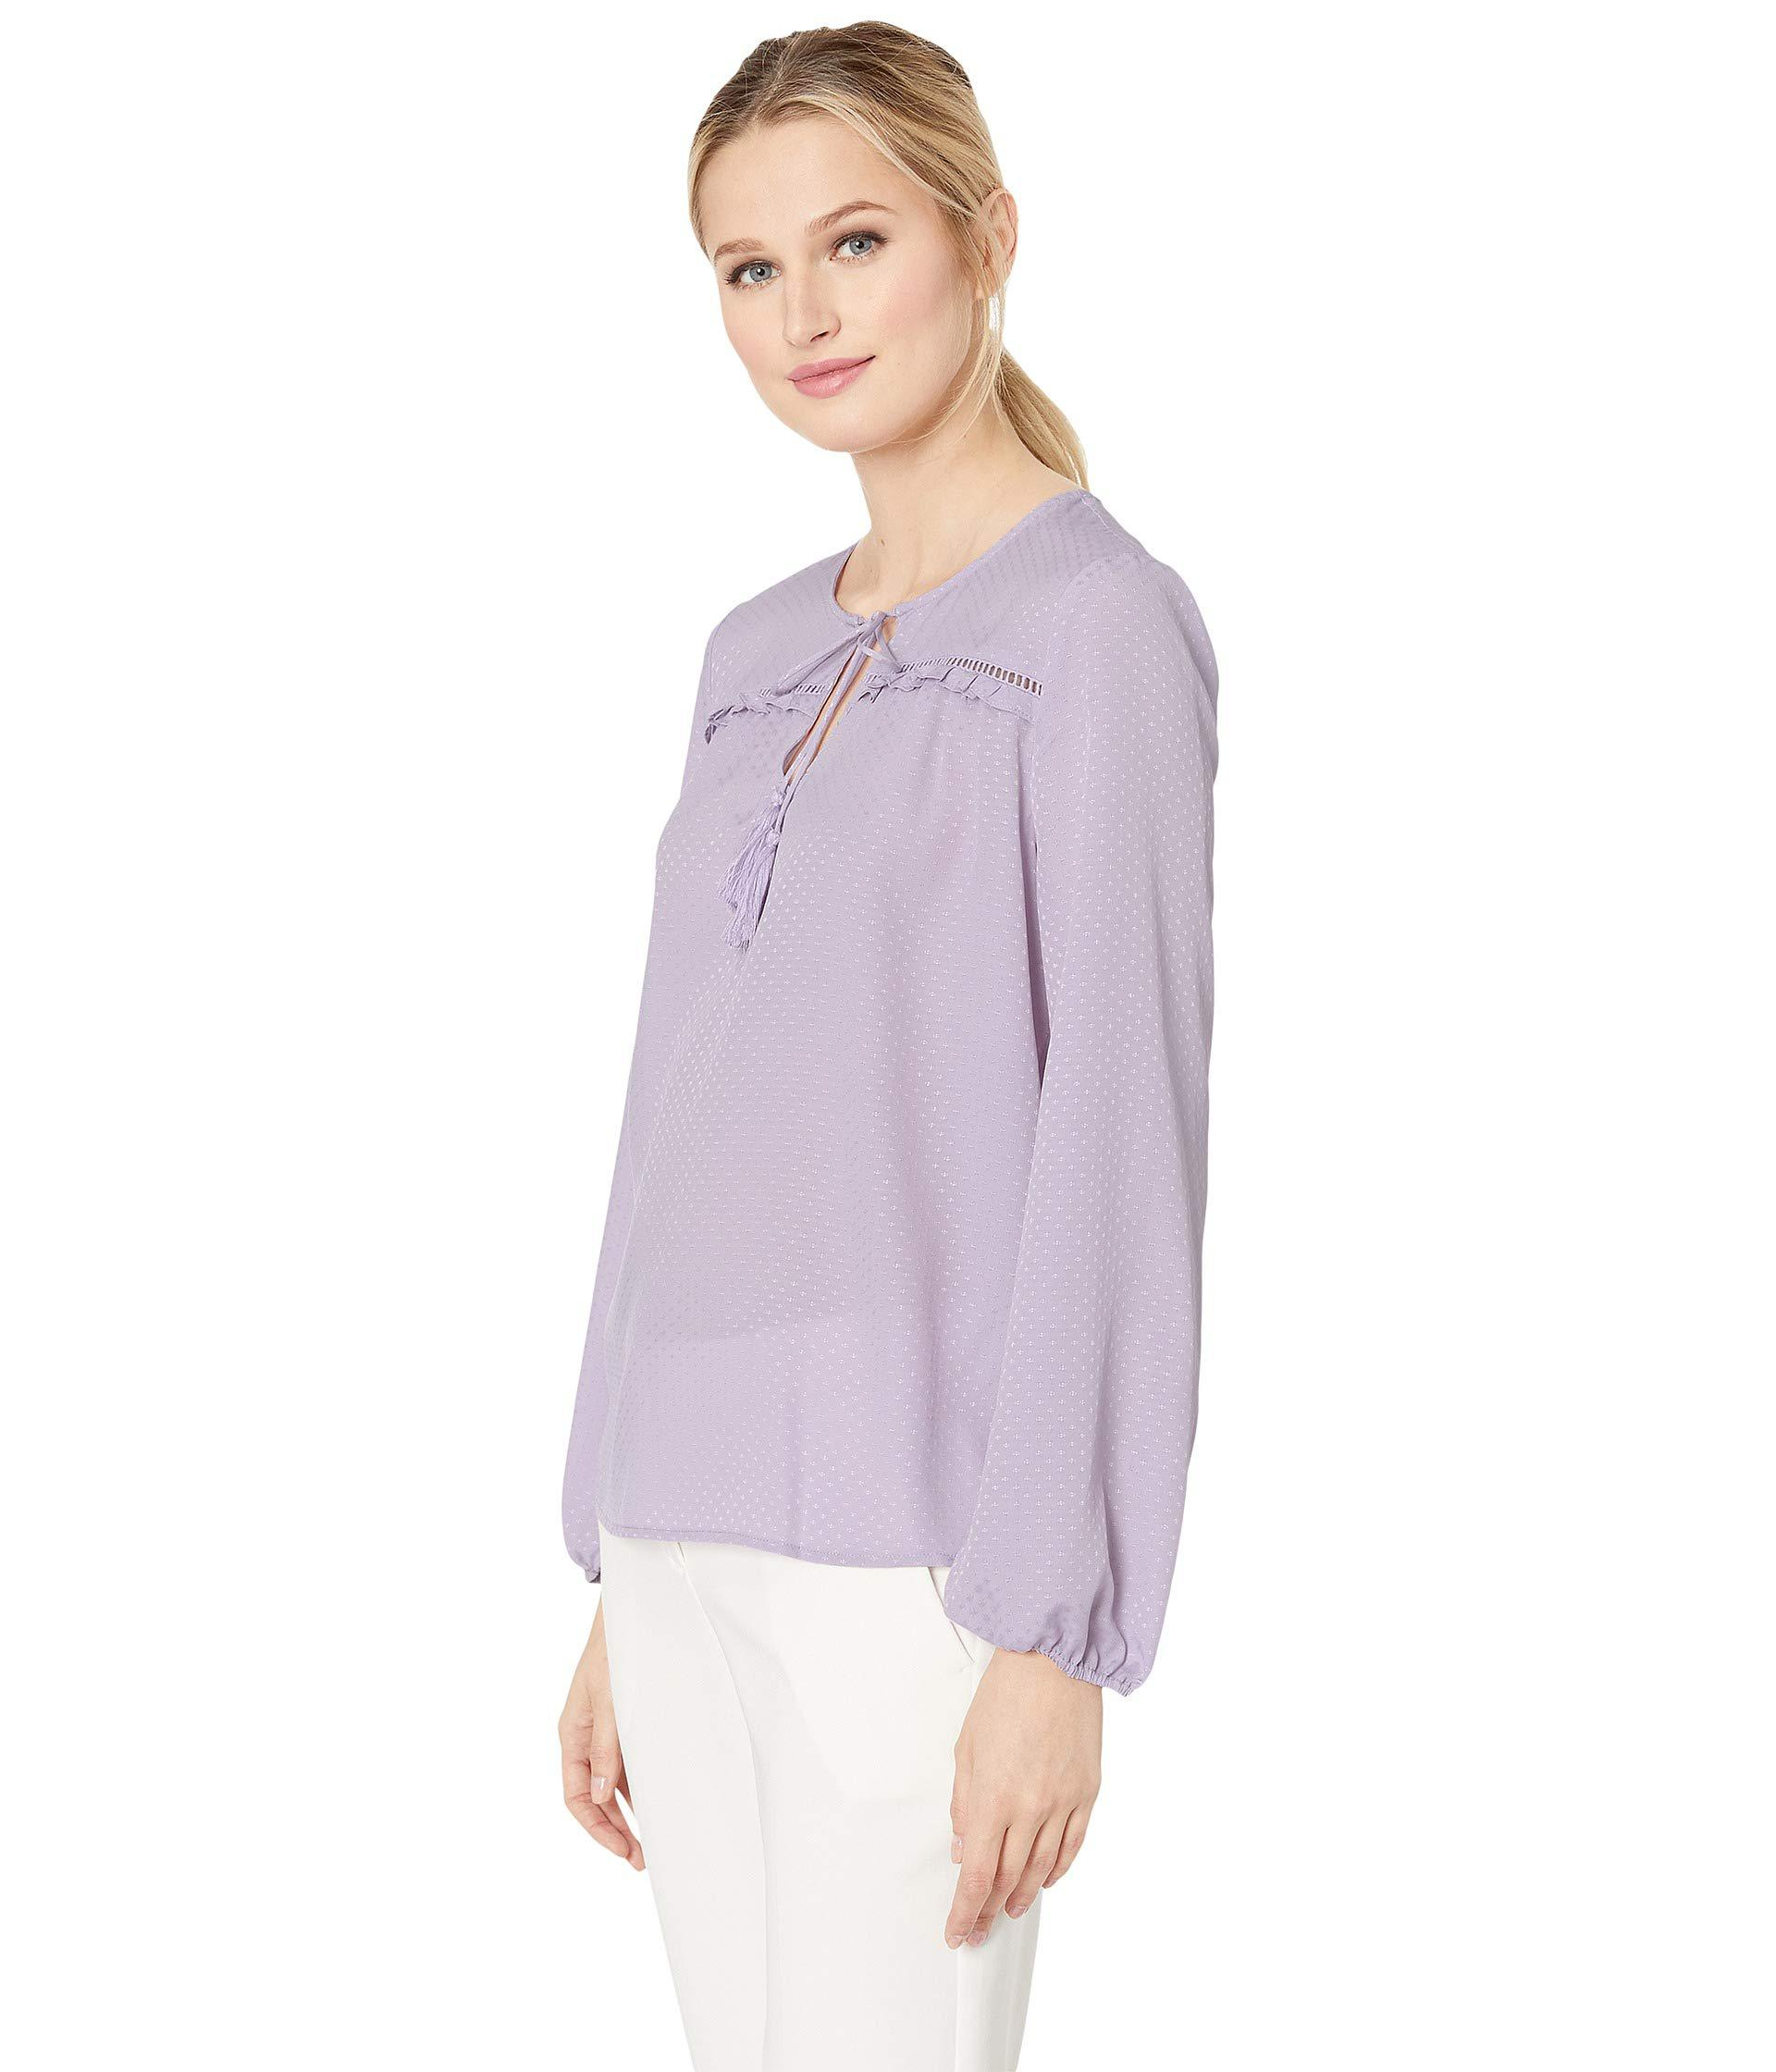 e6d3e68a8c Lyst - Cece Long Sleeve Satin Jacquard Ruffled Tie Neck Blouse (soft  Orchid) Women s Blouse in Purple